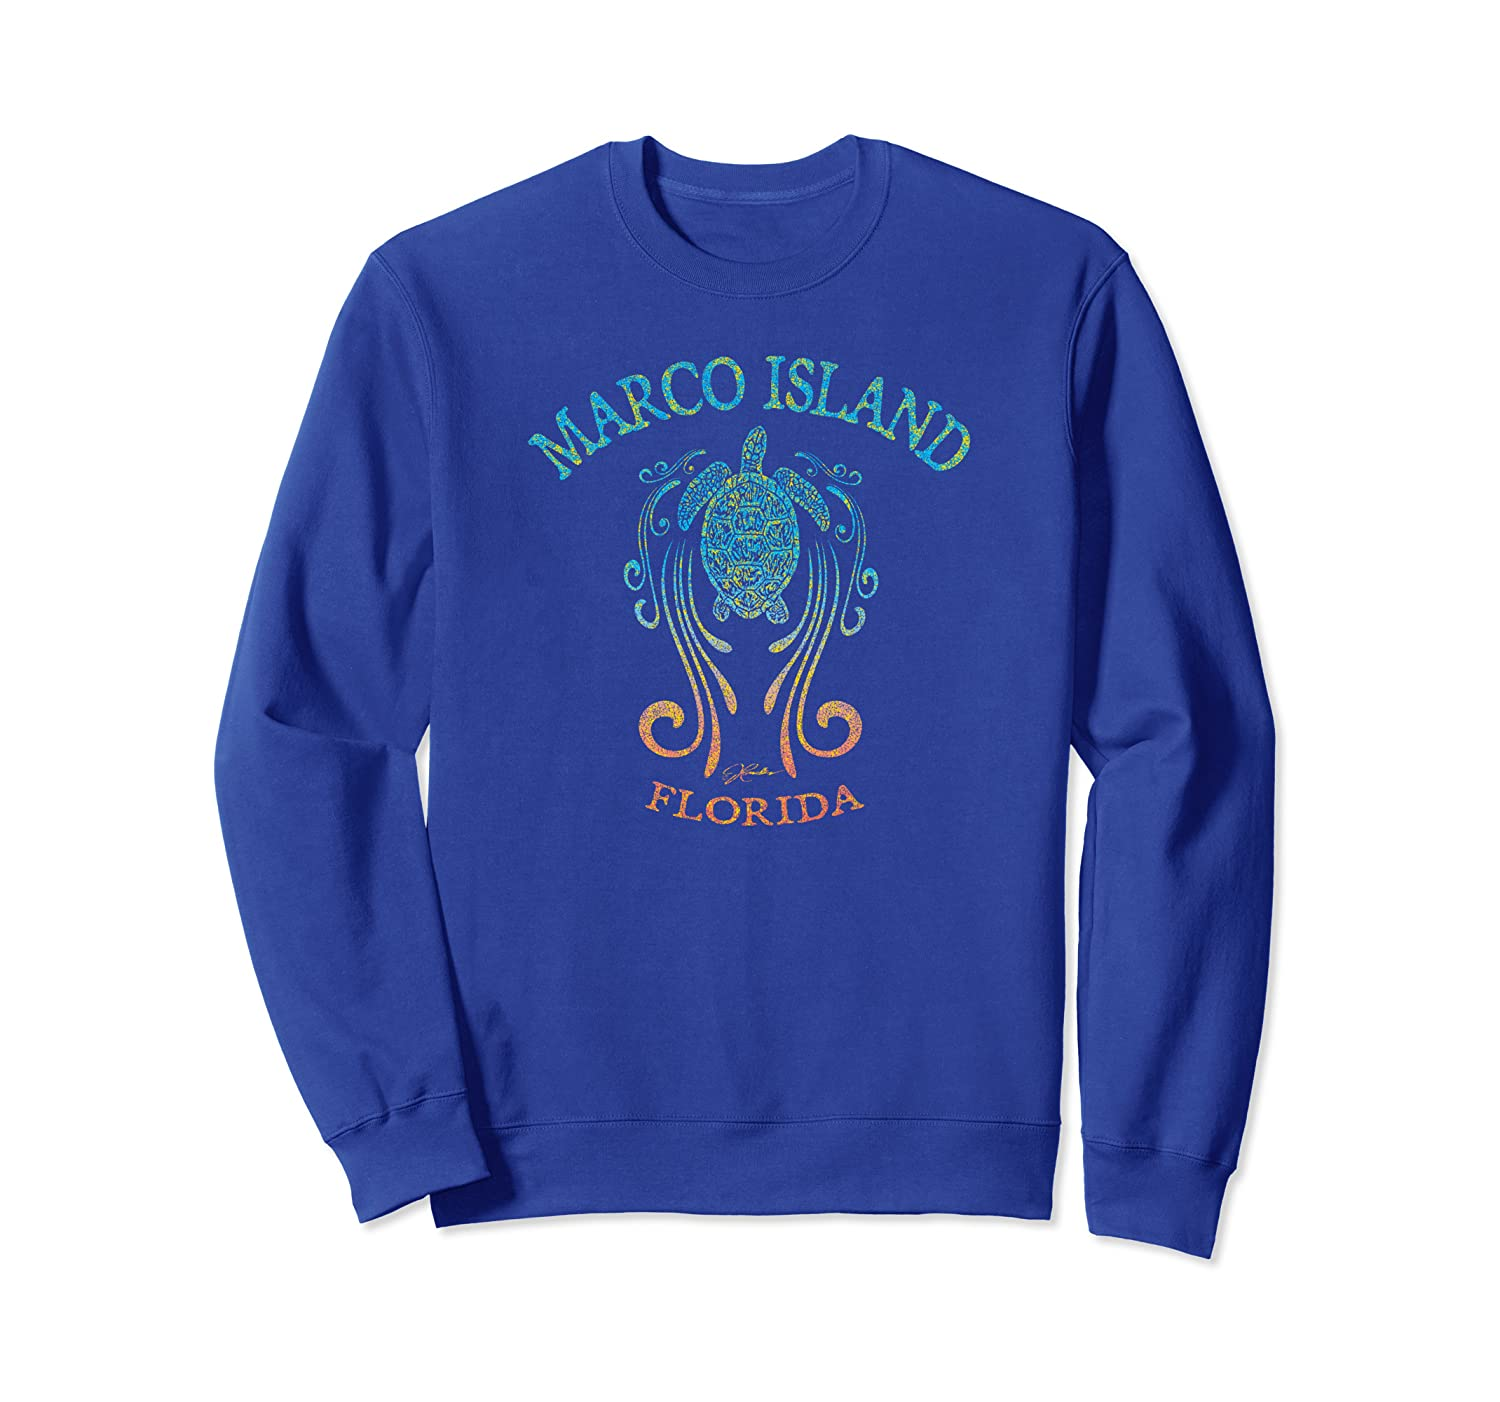 JCombs: Marco Island, FL, Sea Turtle in the Slipstream Sweatshirt